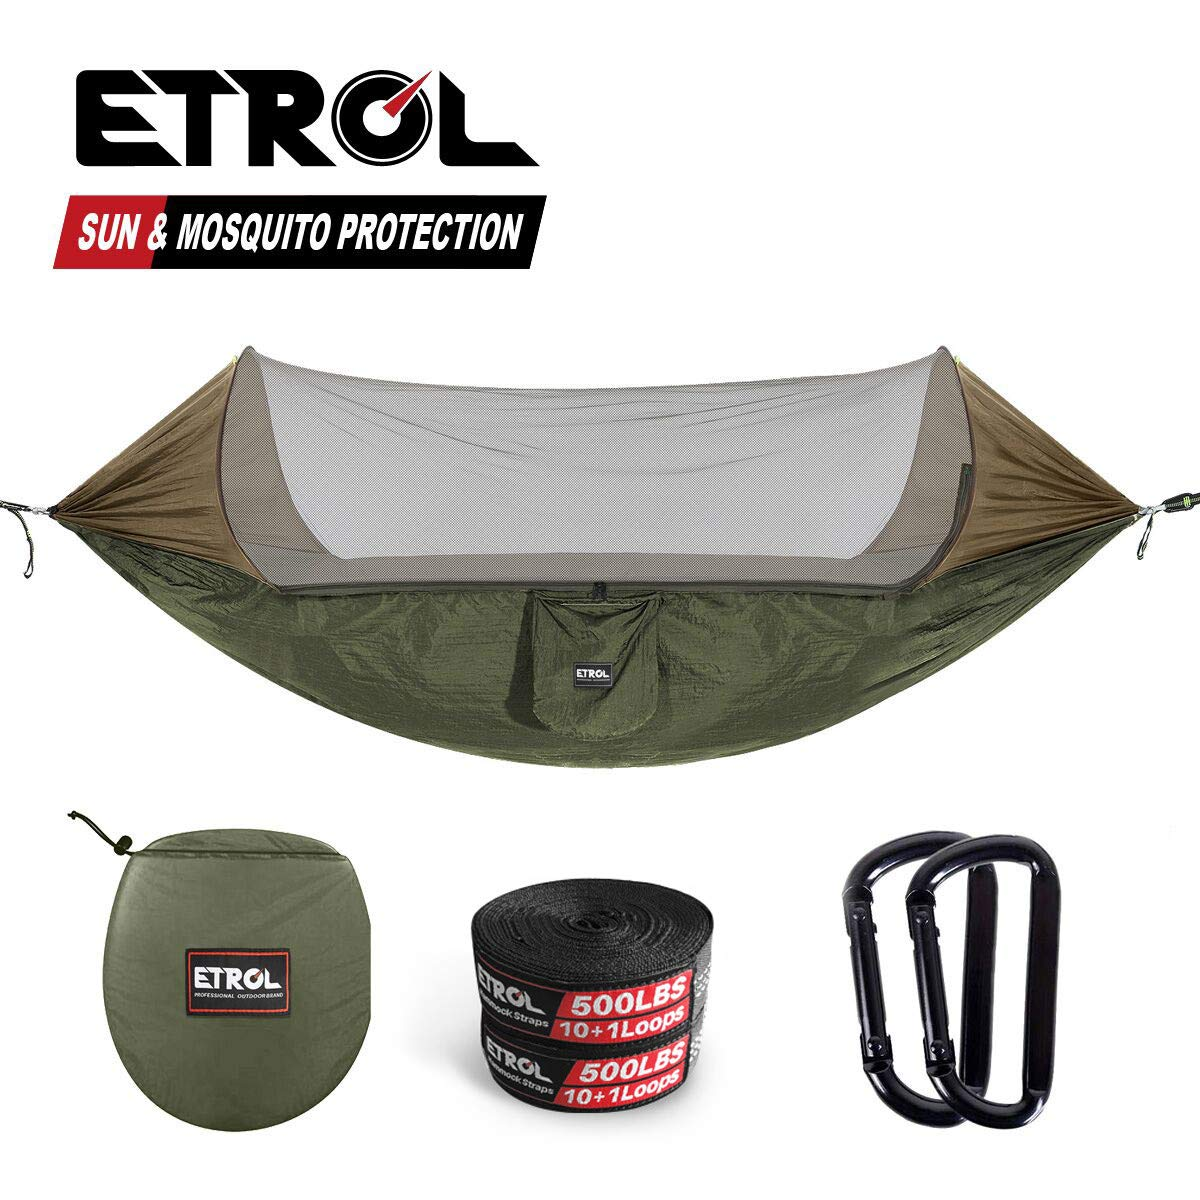 ETROL Upgraded 2 in 1 Large Camping Hammock with Mosquito Net, Pop-Up Lightweight Portable Hanging Hammocks with Tree Straps, Swing Sleeping Hammock with Net for Outdoor, Hiking, Backpacking, Travel by ETROL